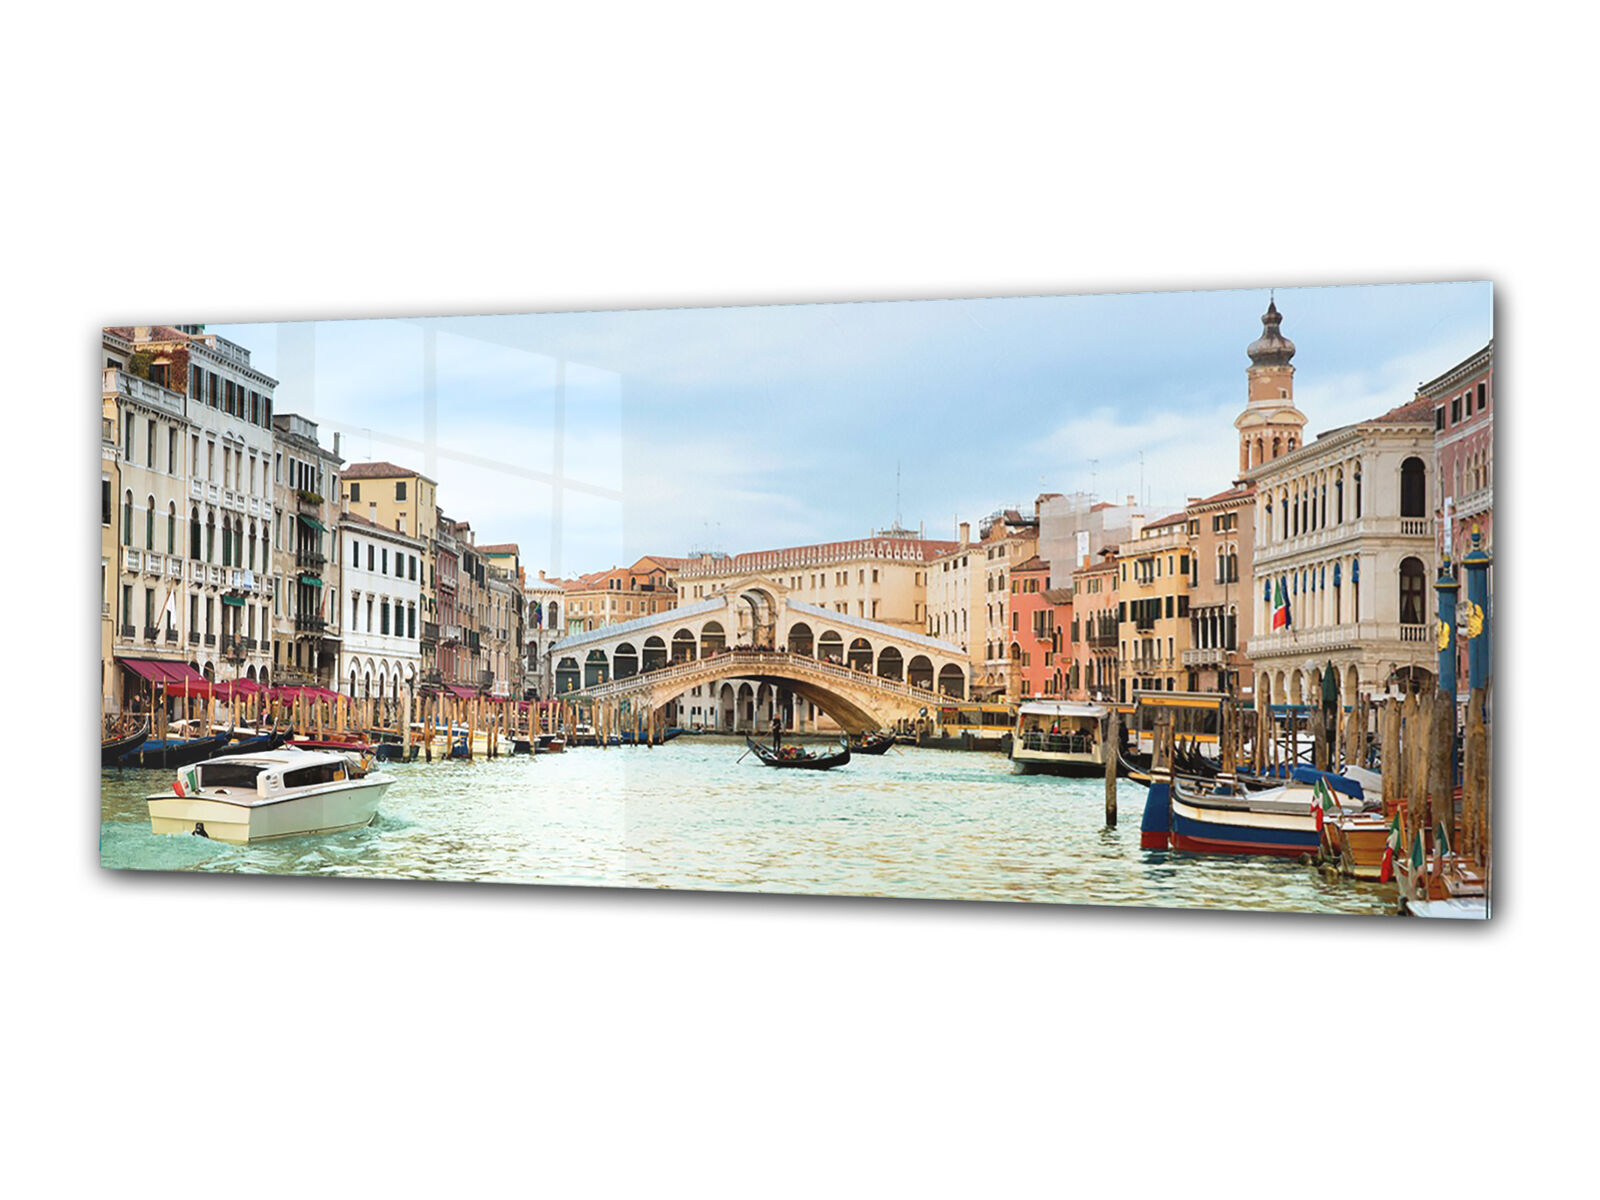 Glass Print Wall Art 80x30 cm Image on Glass Decorative Wall Picture 47252651